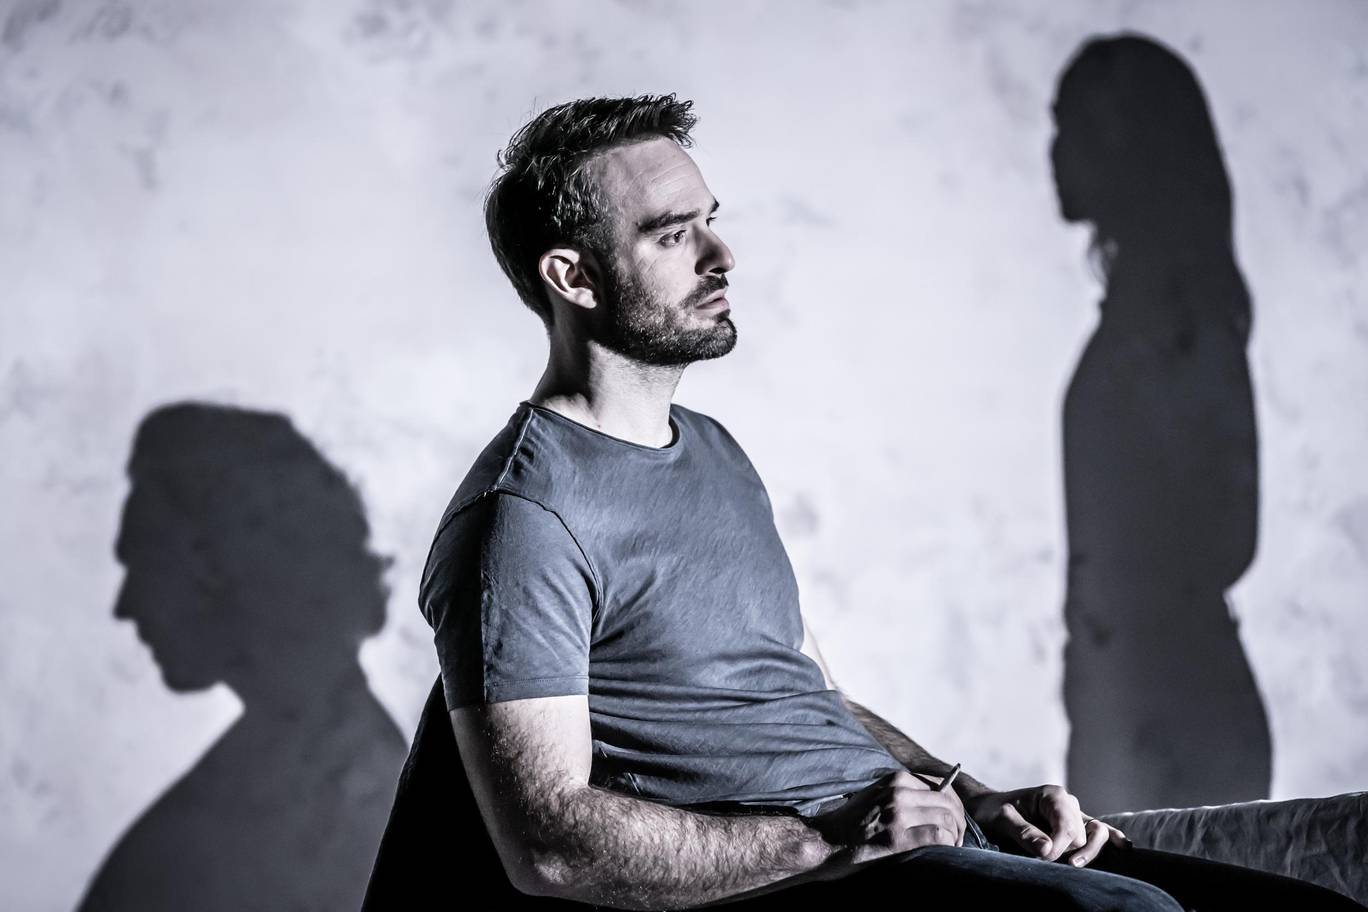 charlie-cox-jerry-in-betrayal-directed-by-jamie-lloyd.-photo-credit-marc-brenner-0.jpg